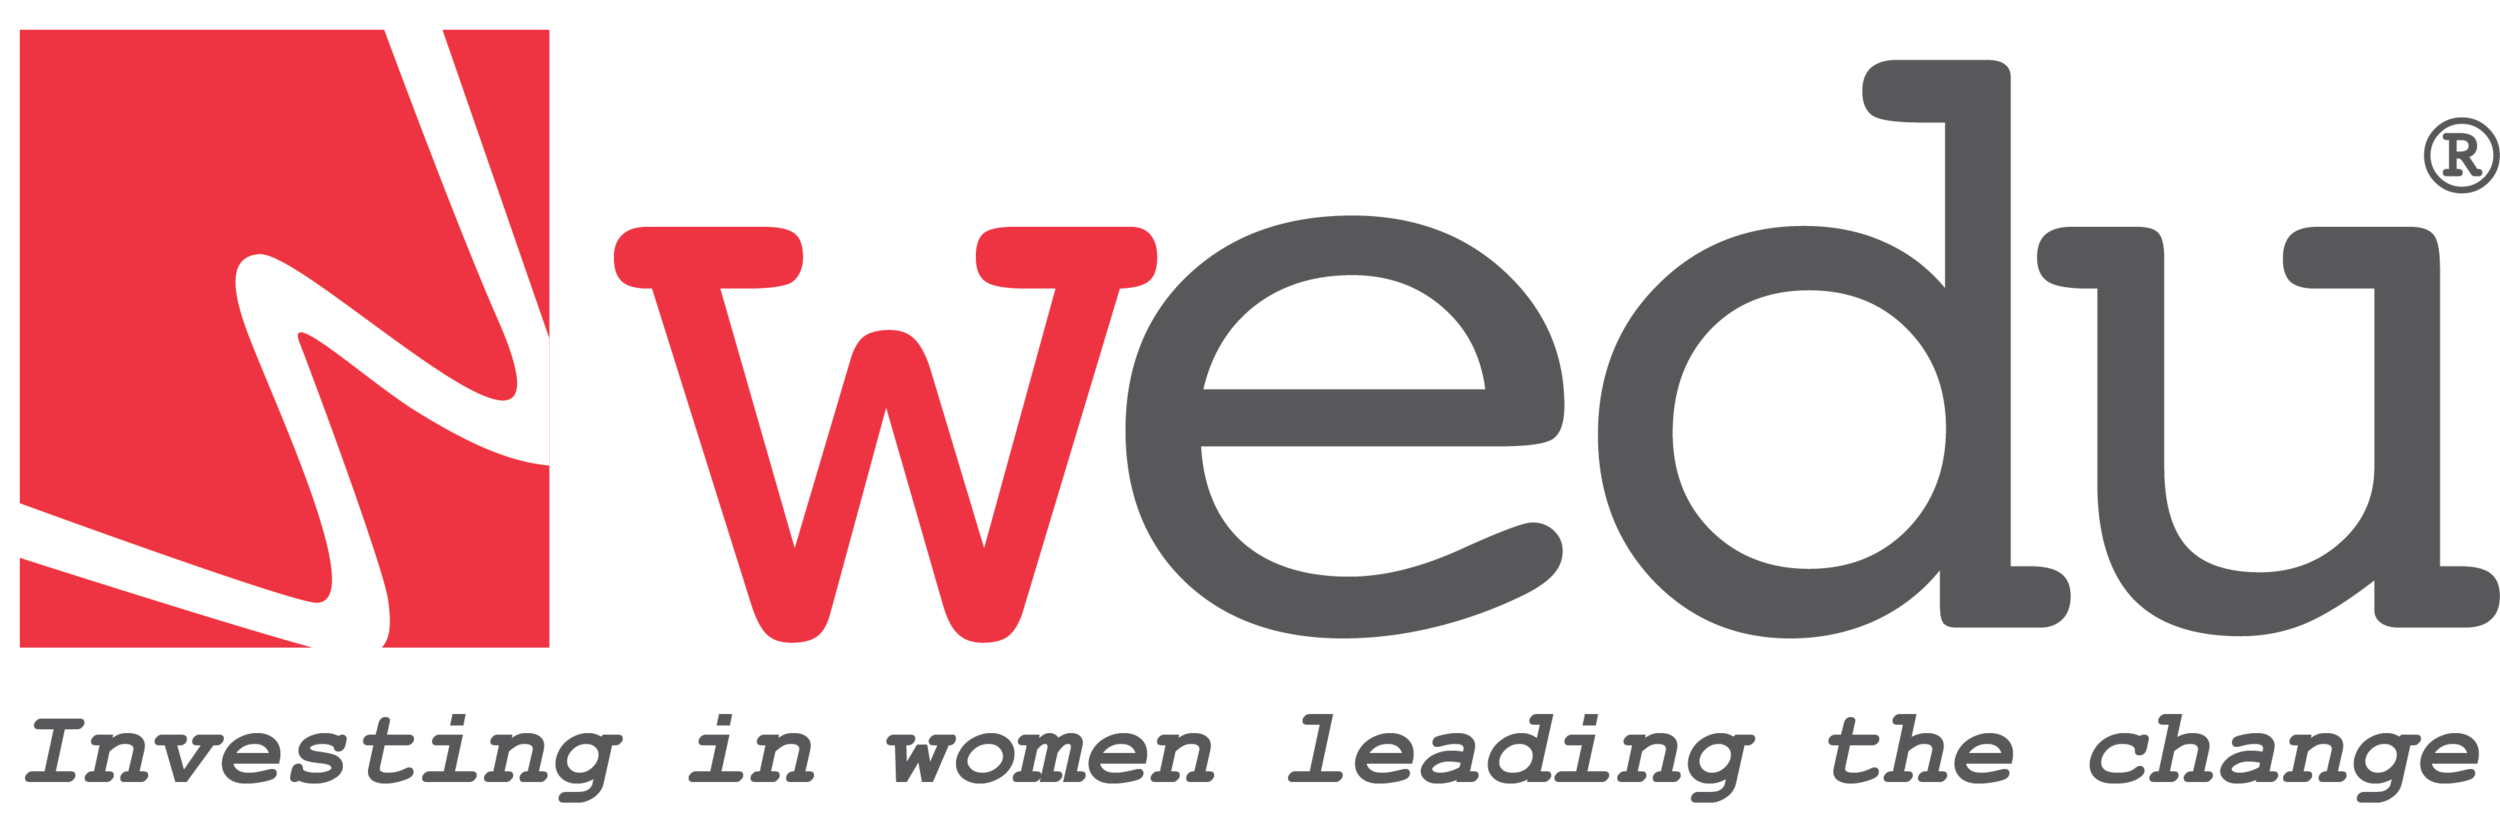 MENTOR - Wedu is a leadership development organization that aims to unlock the leadership potential of young women in Asia, enabling them to become leaders of their own development and that of their community.